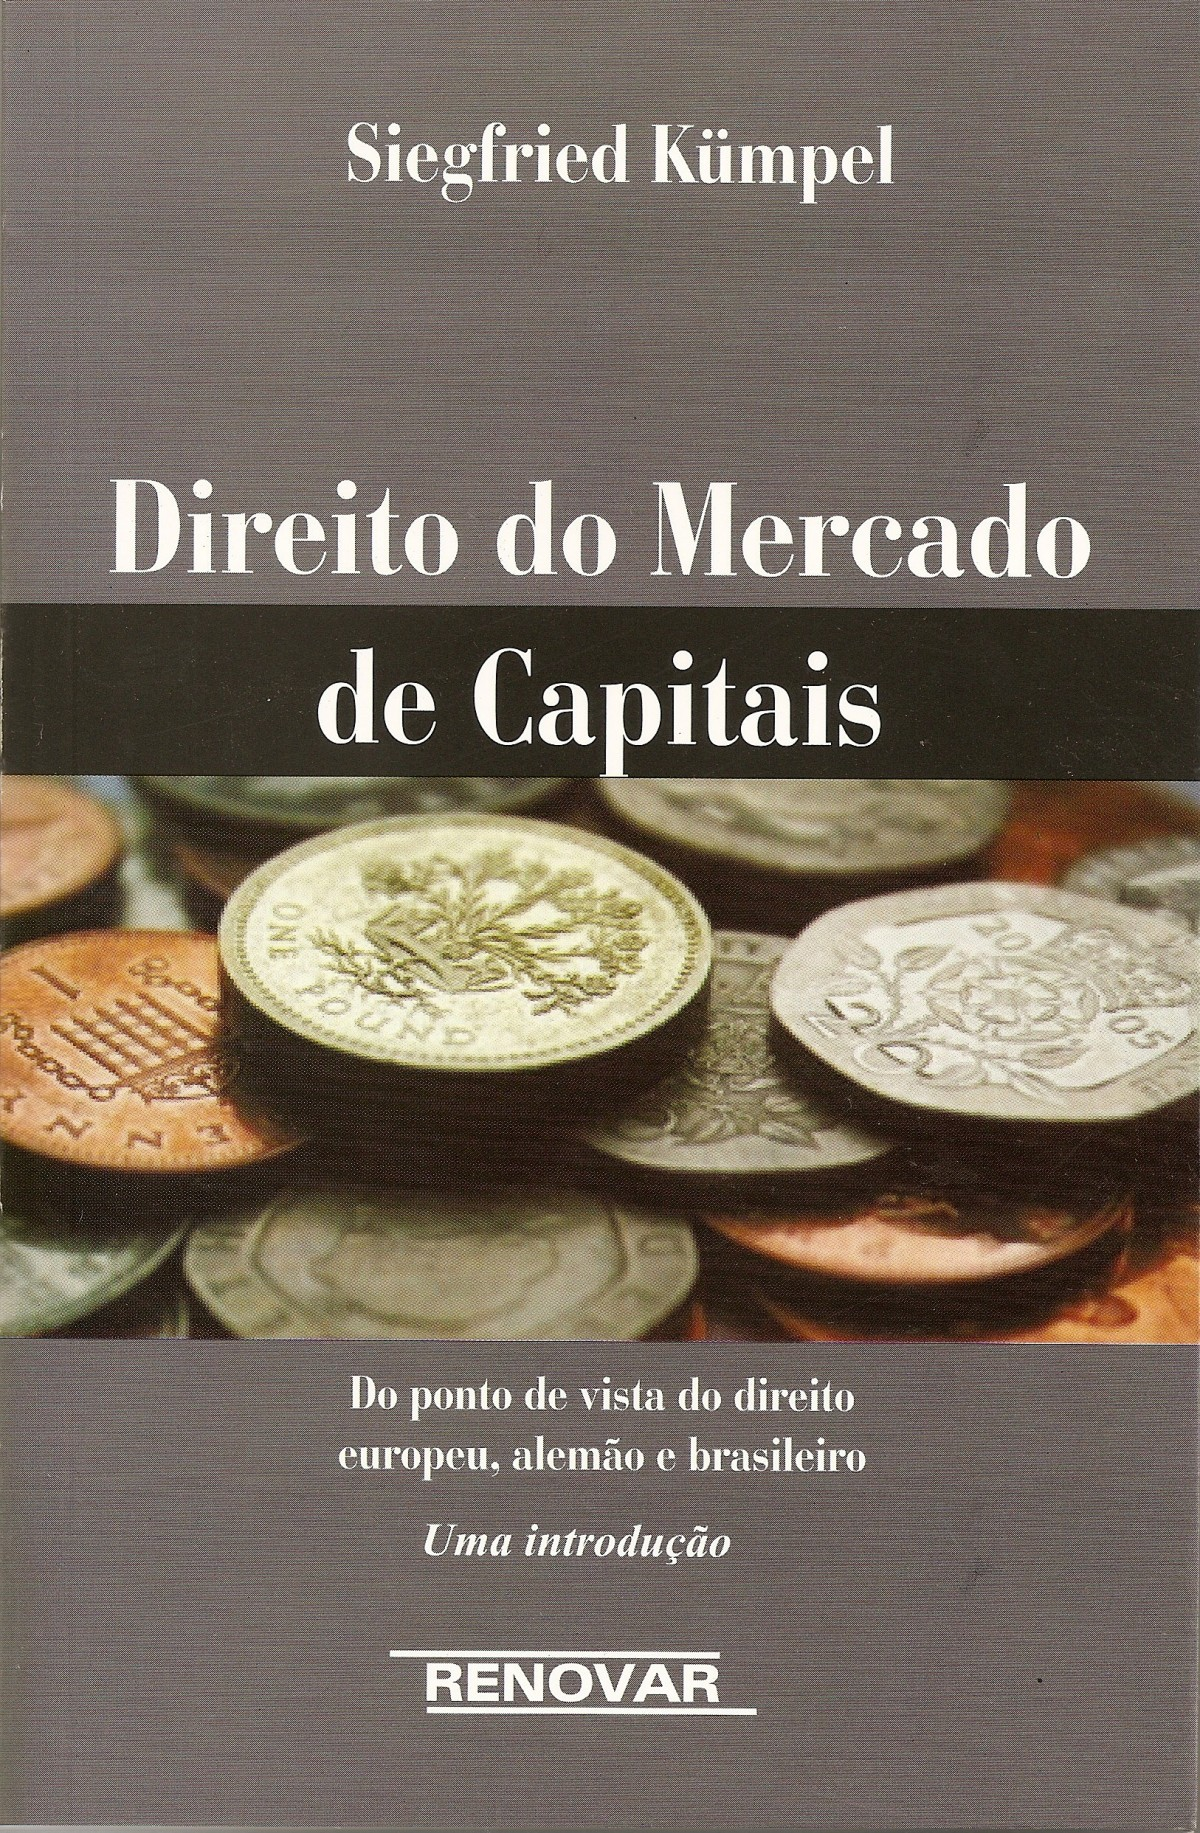 Foto 1 - Direito do Mercado de Capitais